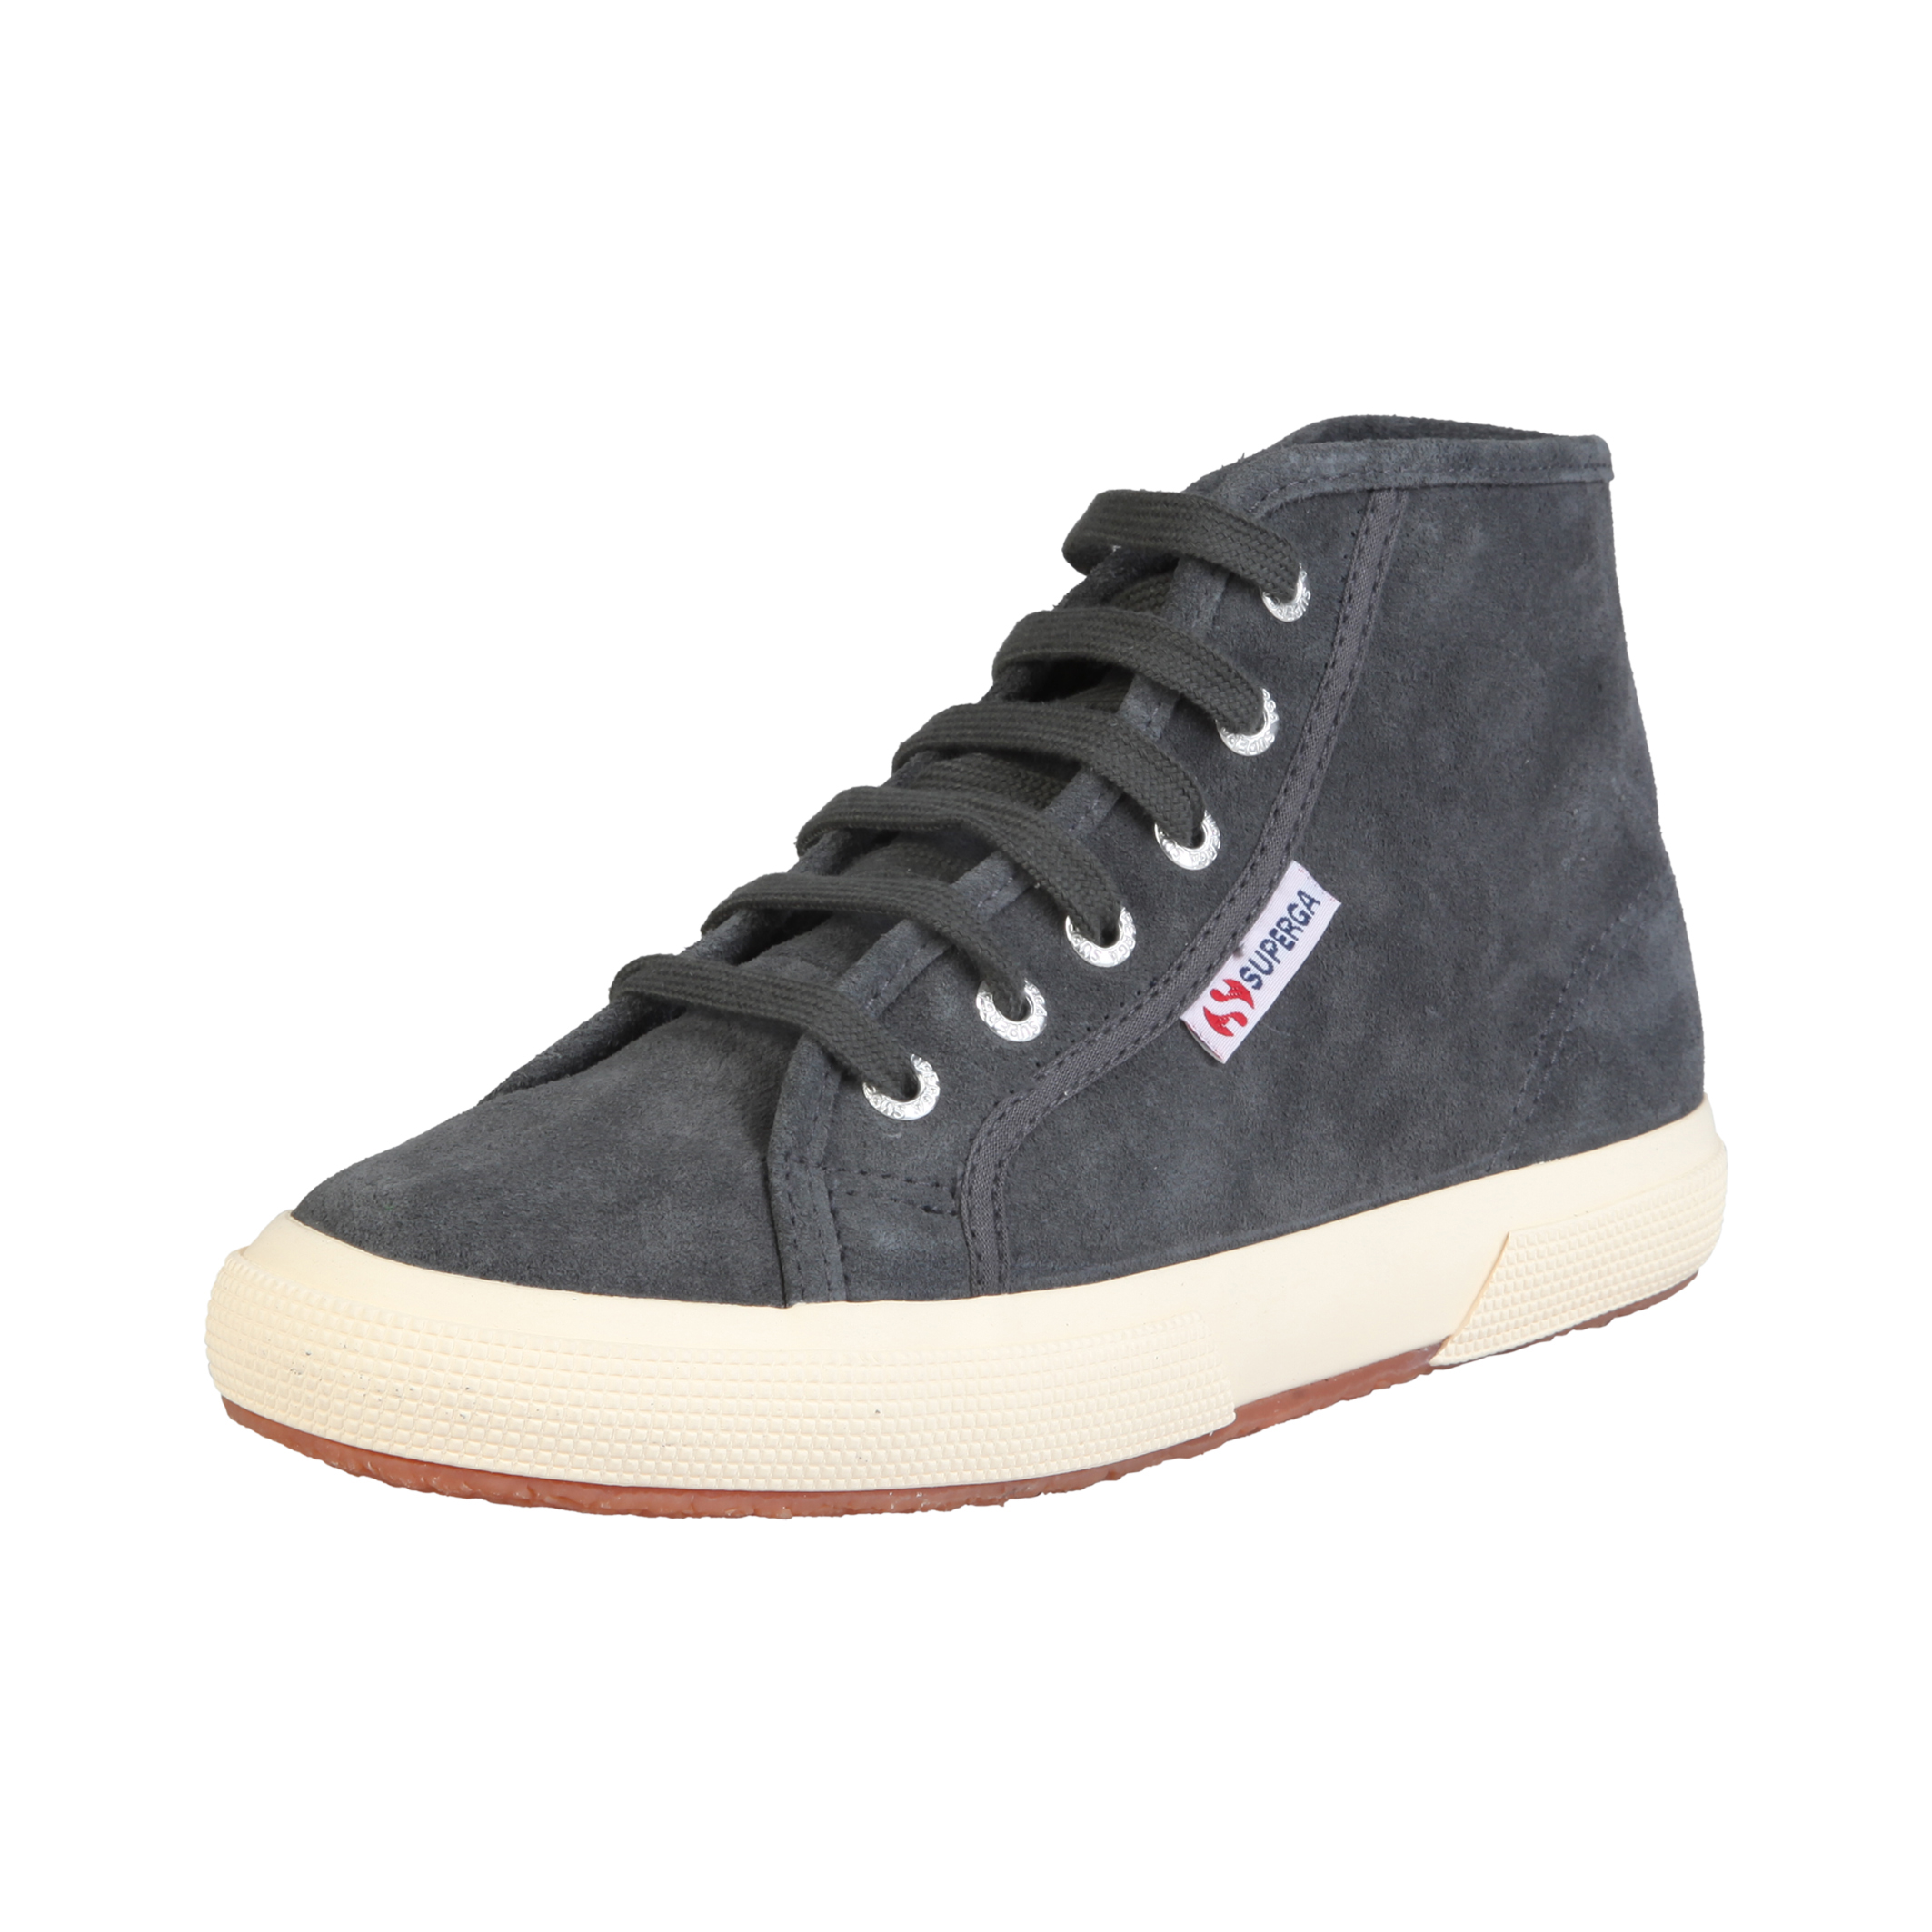 Chaussures   Superga S0028C0_2095 grey